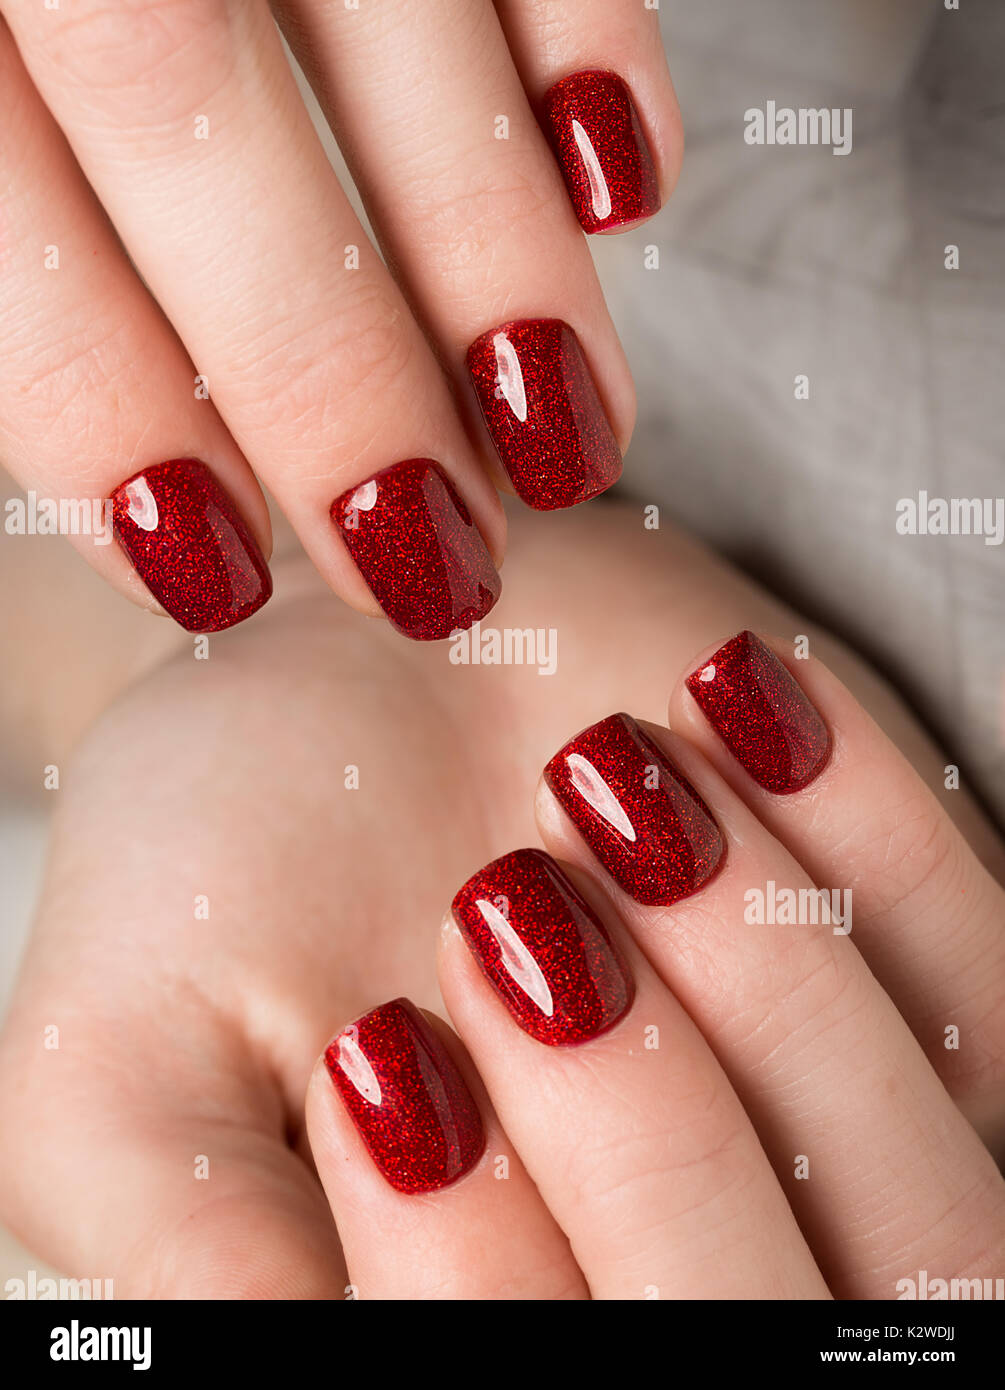 Colored Red Nails Stock Photos & Colored Red Nails Stock Images - Alamy